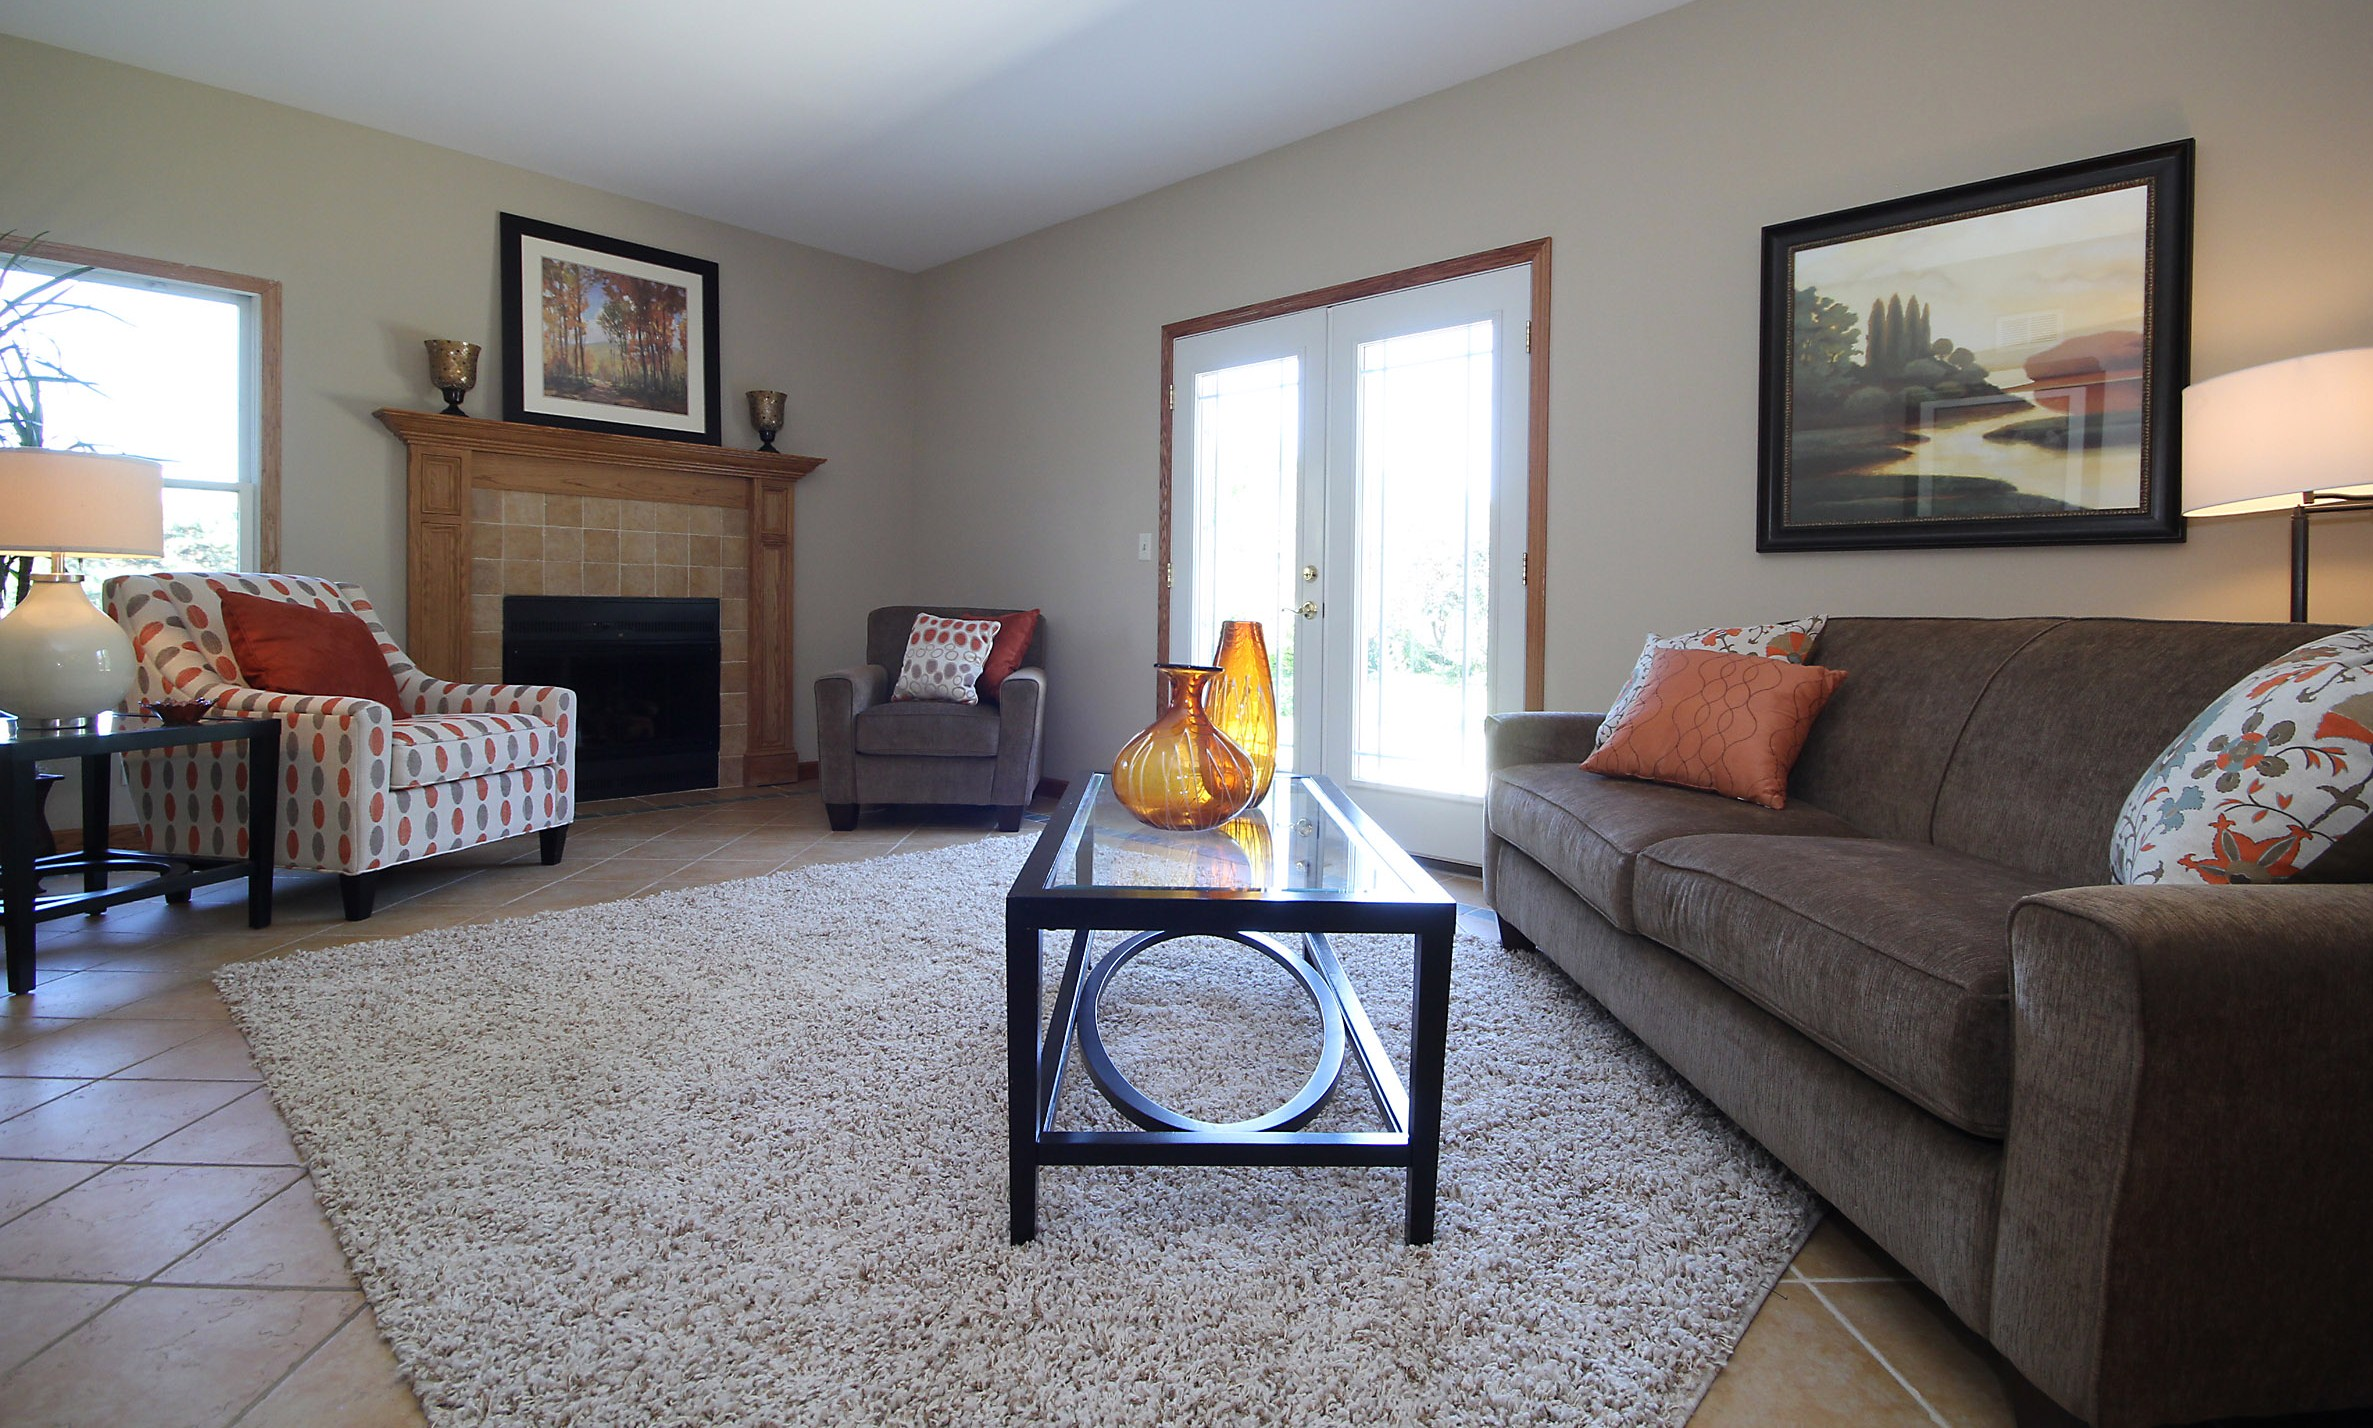 What do I do with this space? A Naperville home makeover.